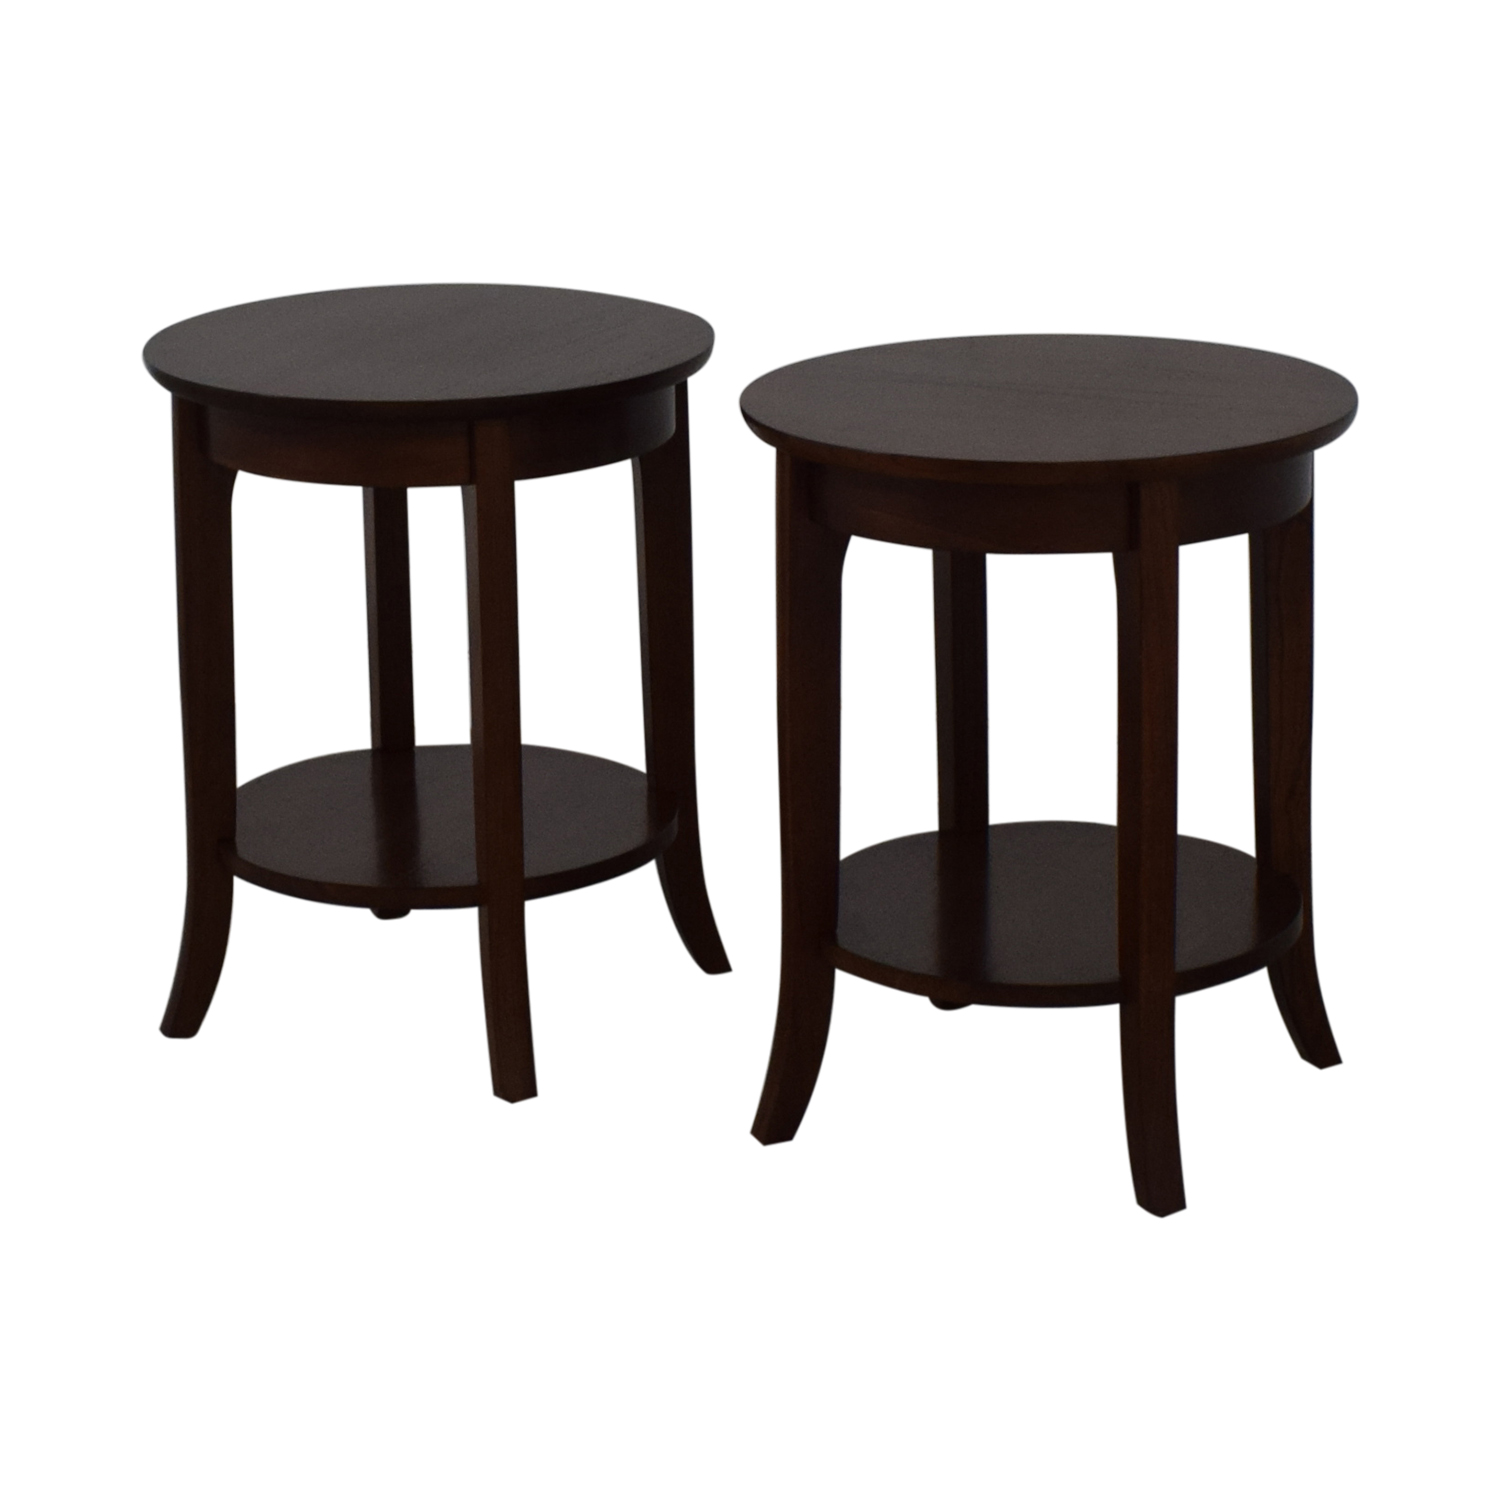 Pottery Barn Pottery Barn Side Tables brown